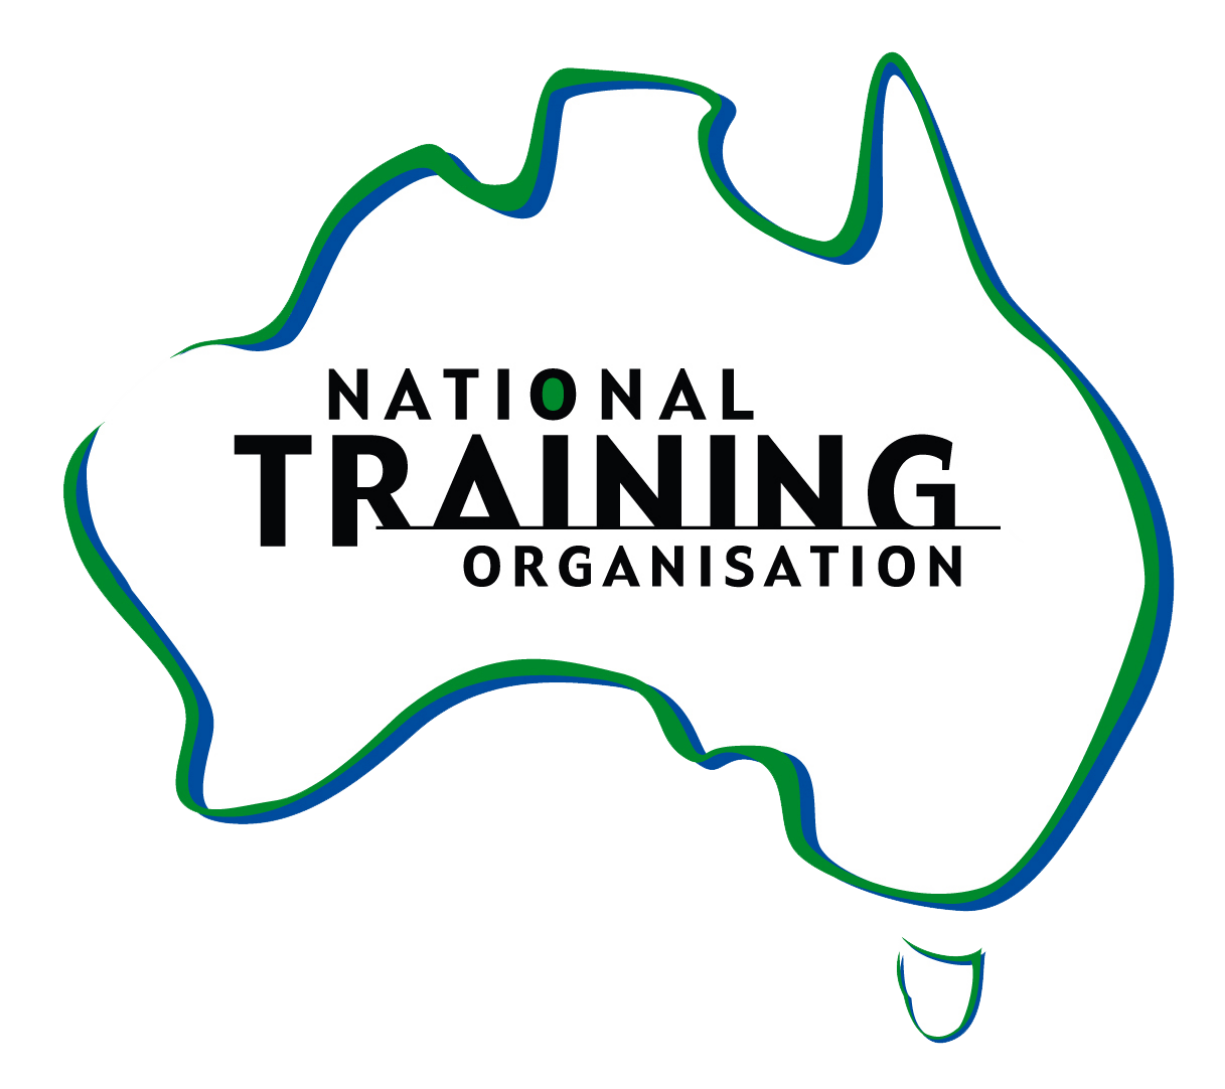 National Training Organisation